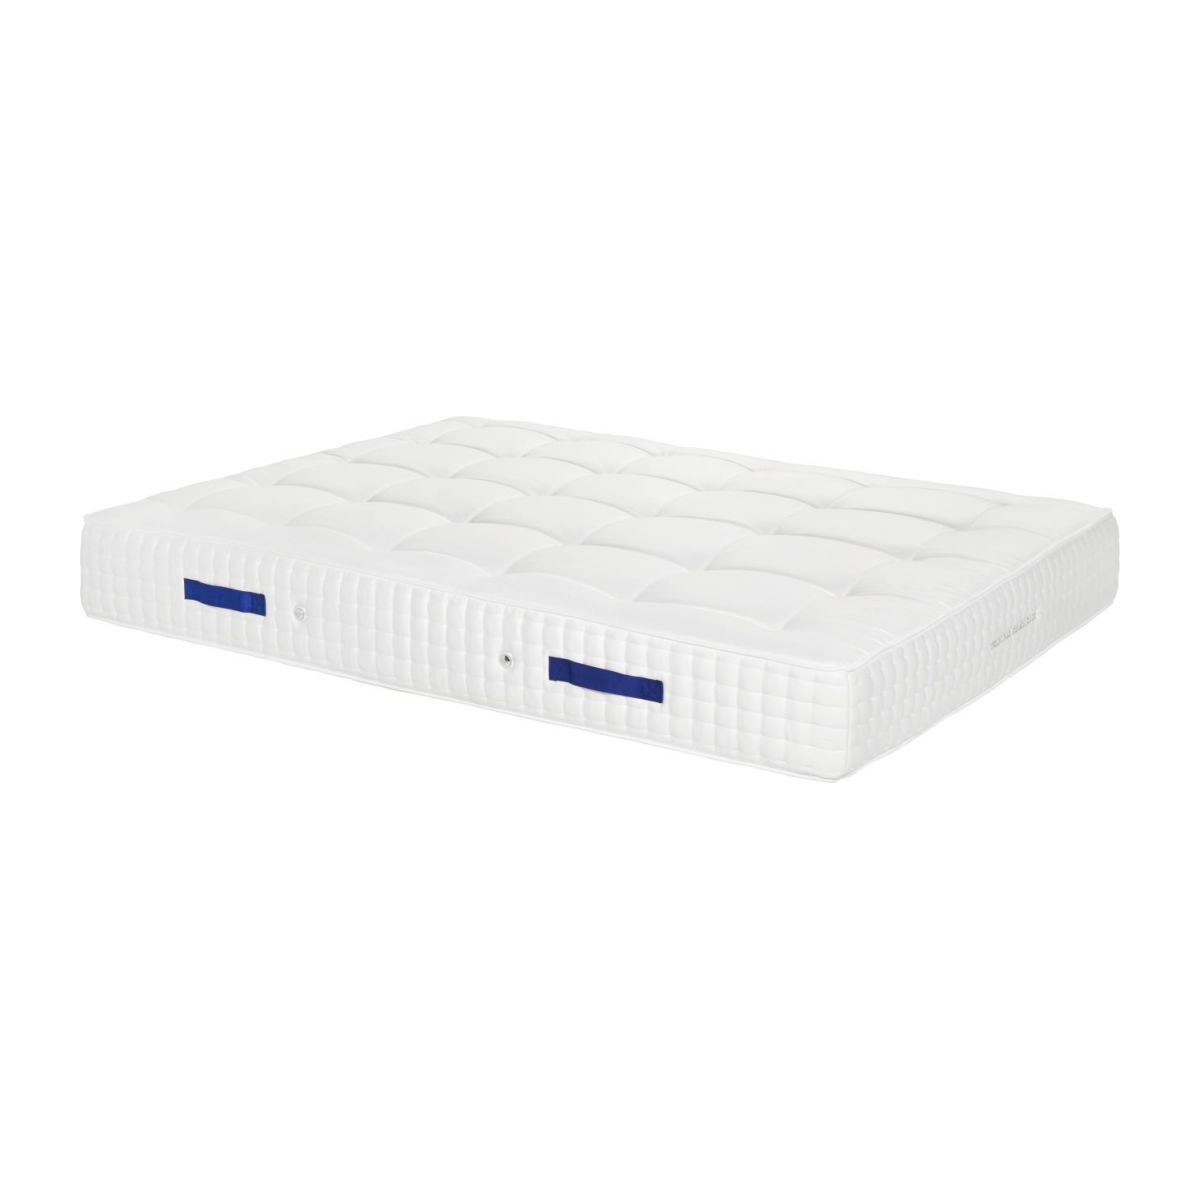 Spring mattress, width 26 cm - 180x200cm - firm support n°1